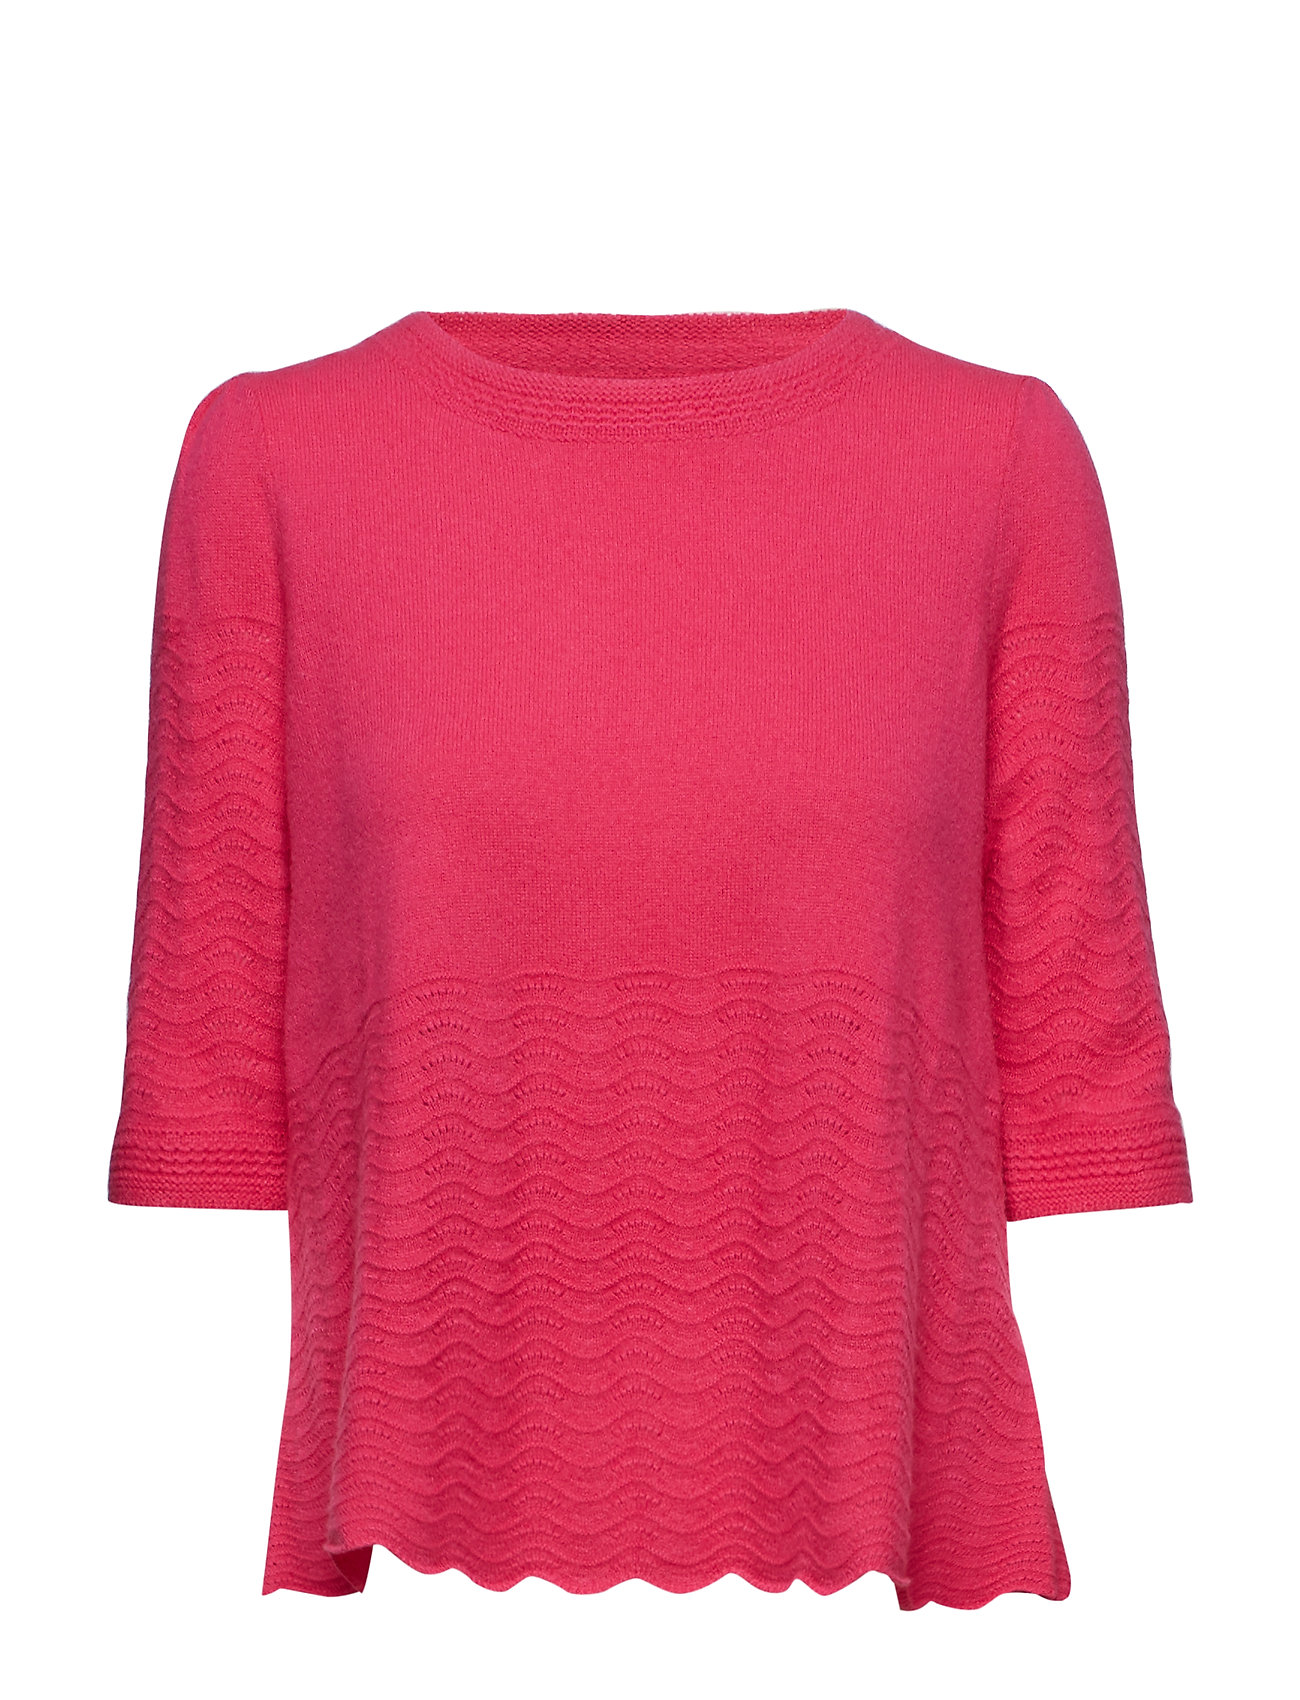 ODD MOLLY soft pursuit sweater - HOT PINK